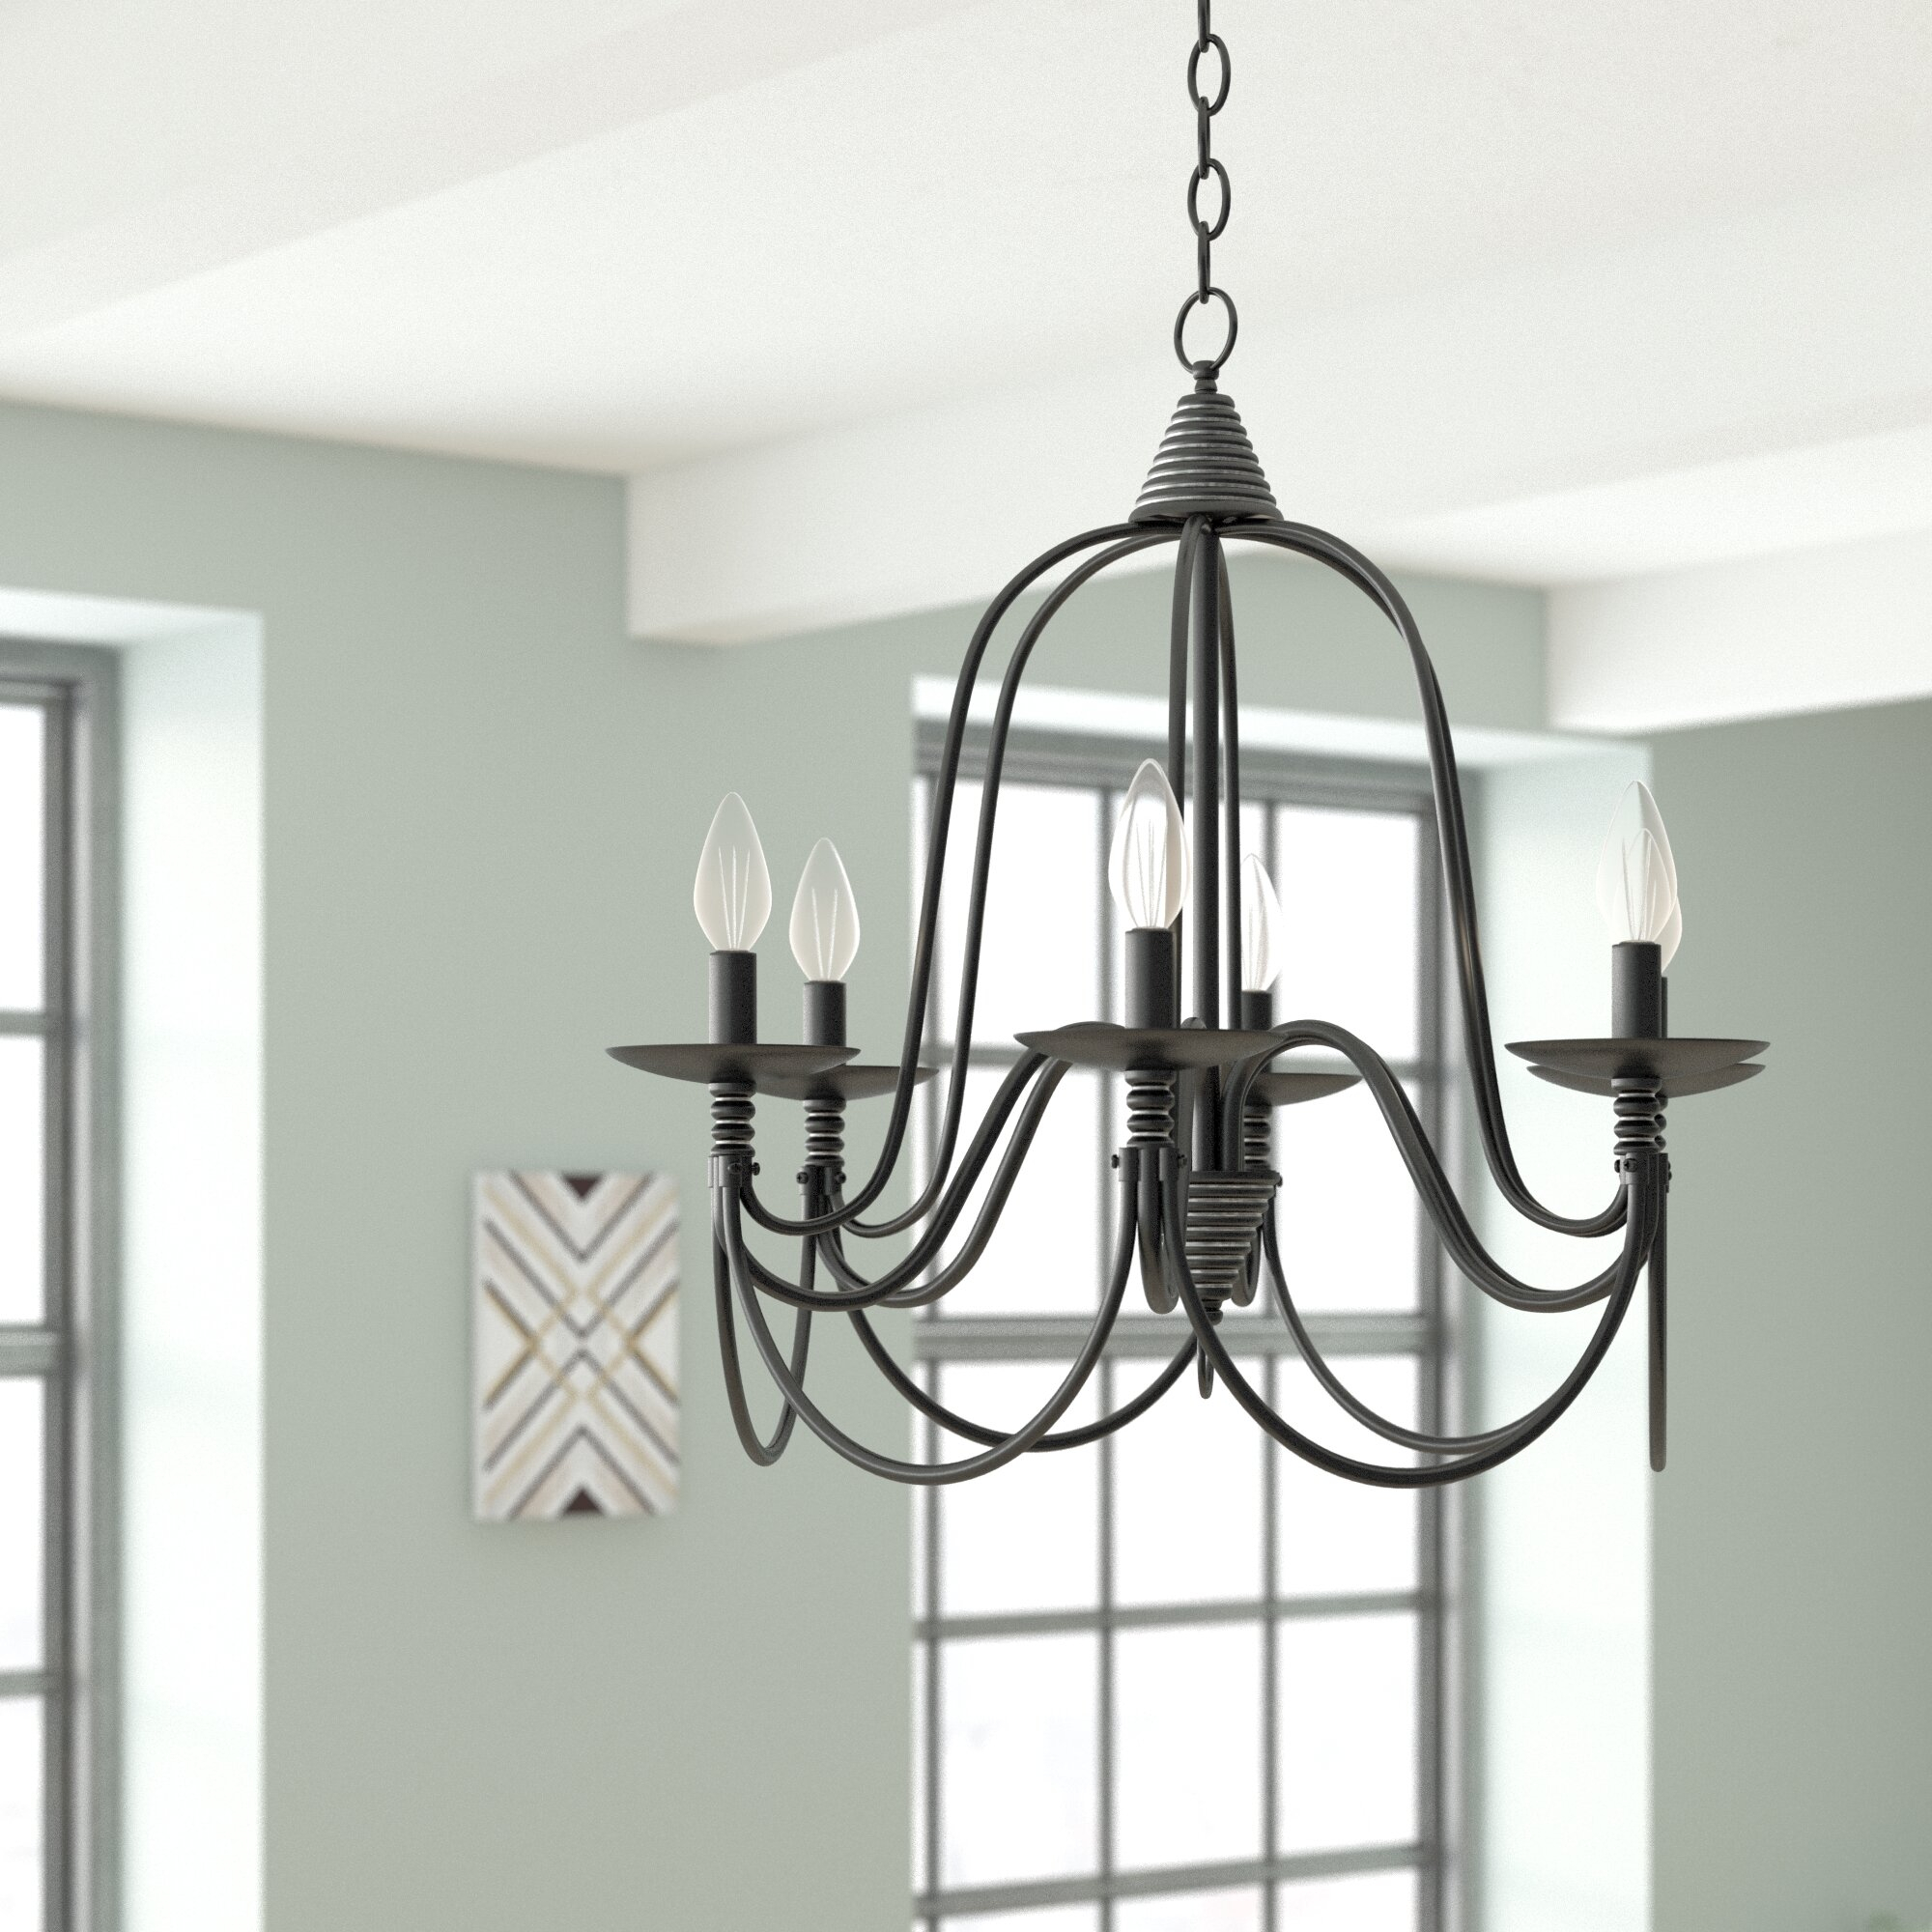 Vahe 6-Light Chandelier for Watford 6-Light Candle Style Chandeliers (Image 22 of 30)